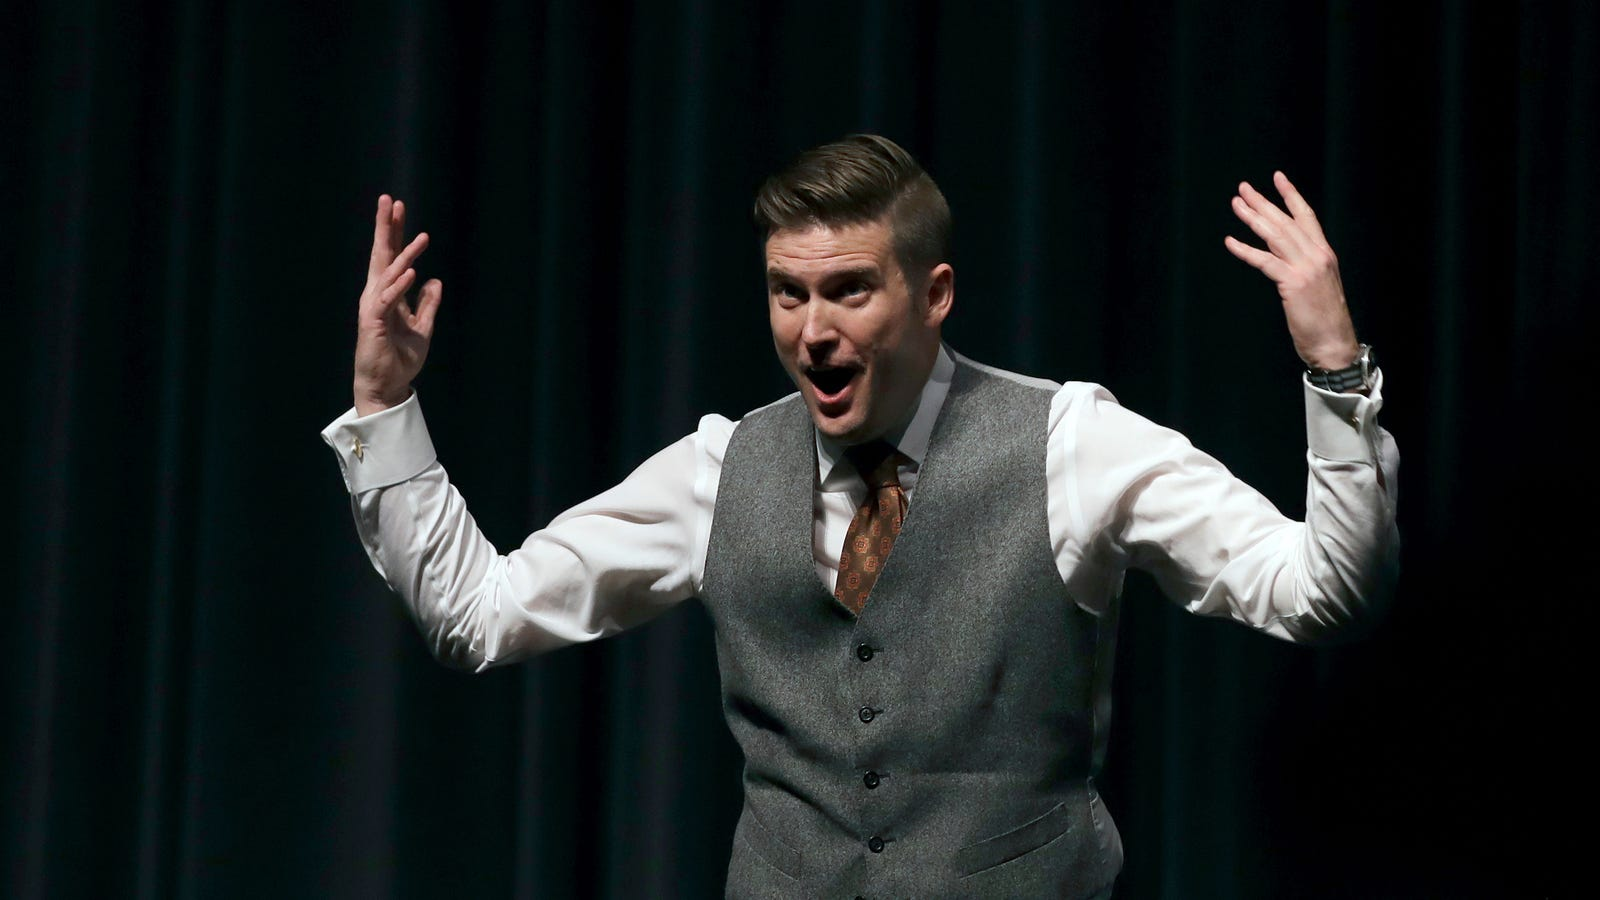 Richard Spencer Postpones College Tour No One Was Attending Anyway, Blames Antifa